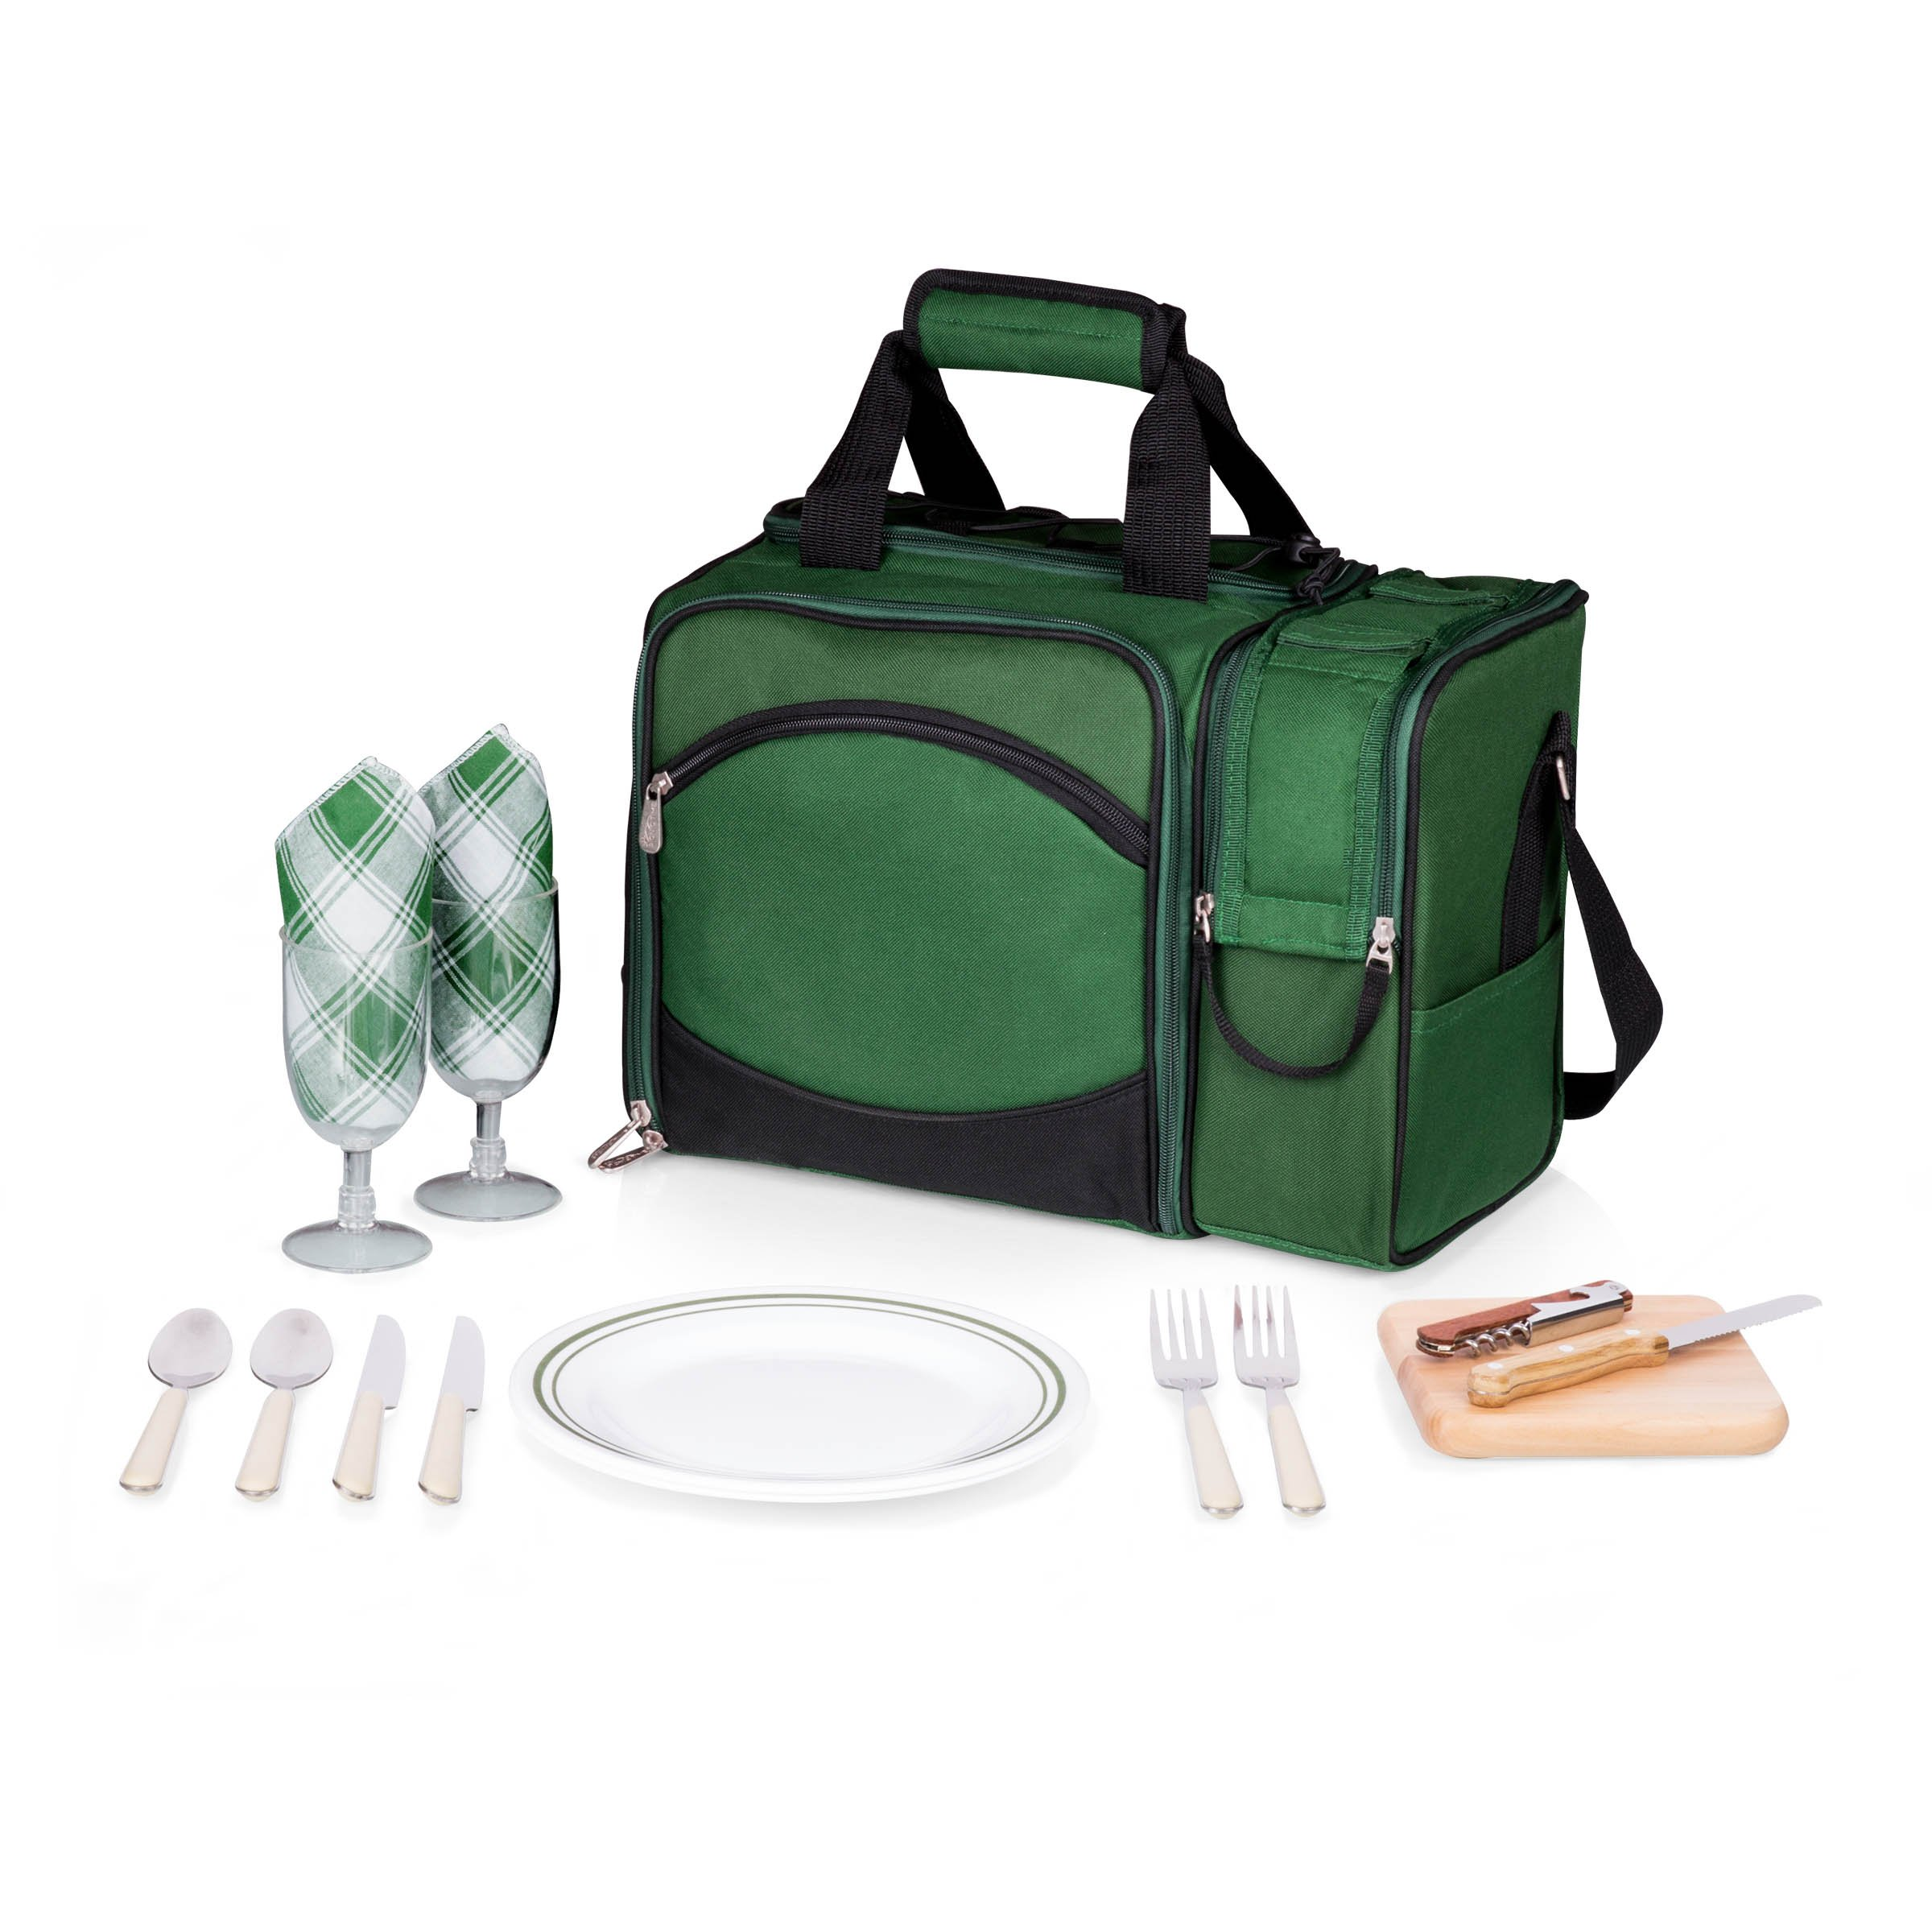 Picnic Time Malibu Insulated Cooler Picnic Tote with Service for 2, Hunter Green